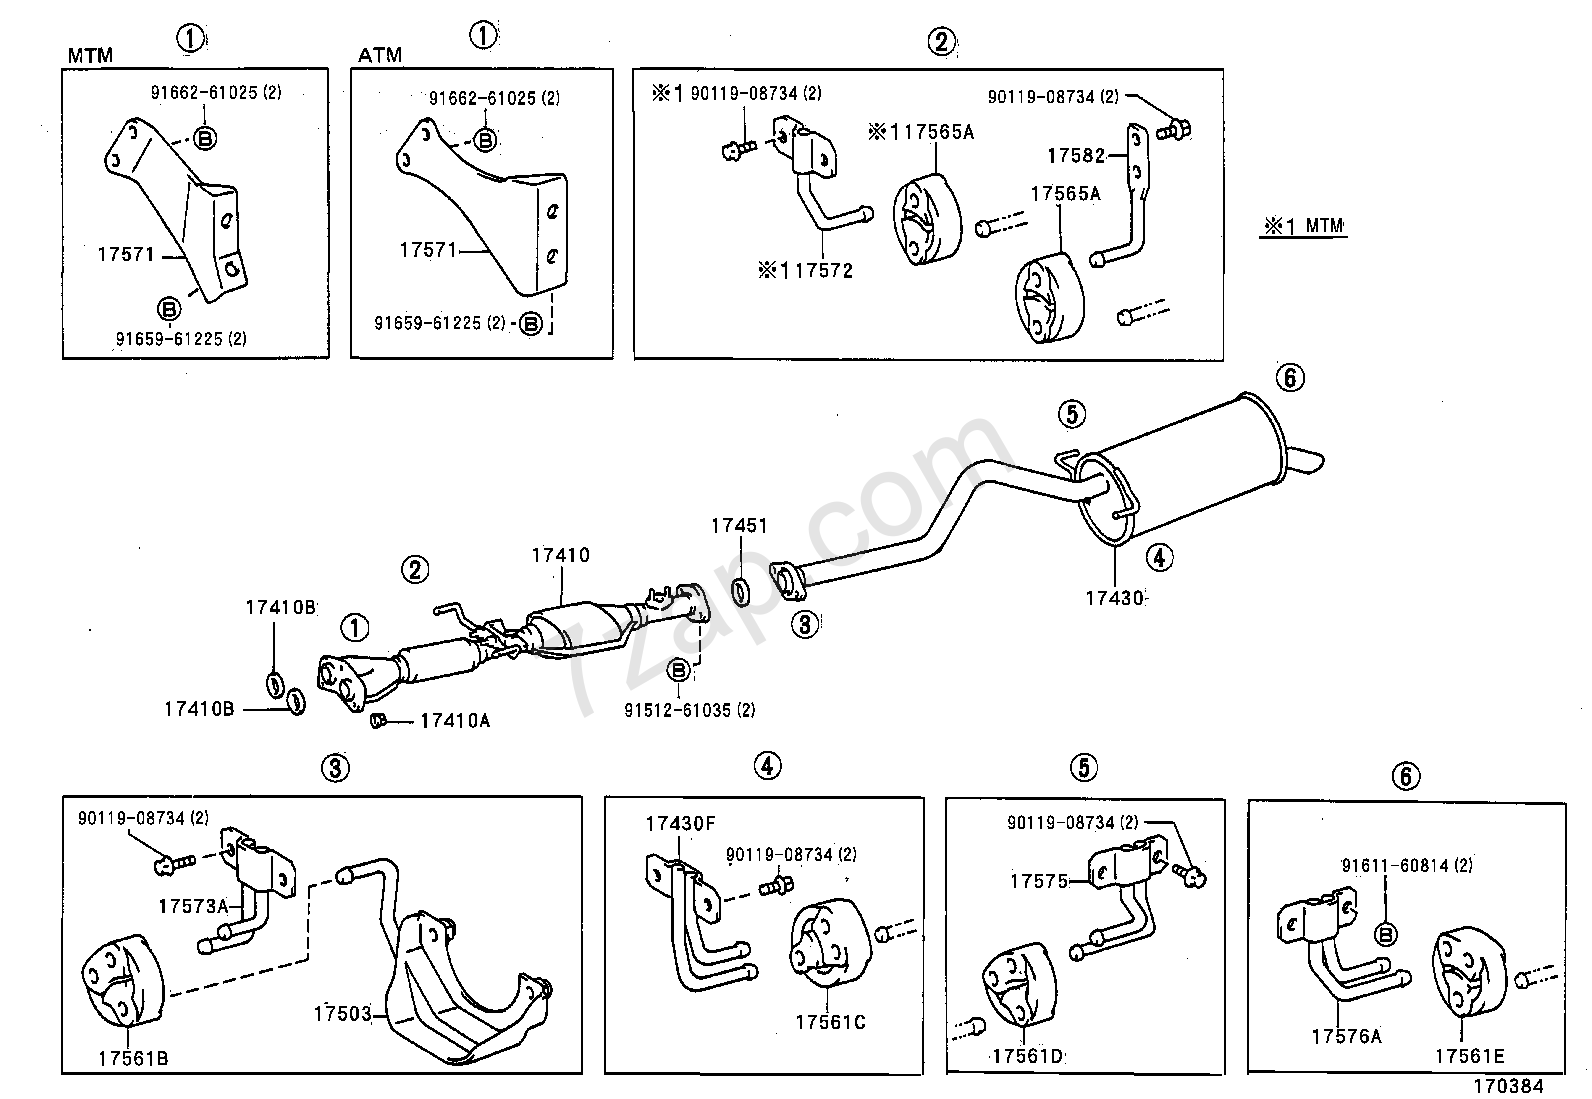 Toyota Previa Plug Wiring Diagram Exhaust System Electrical Diagrams Spark Plugs Pipe